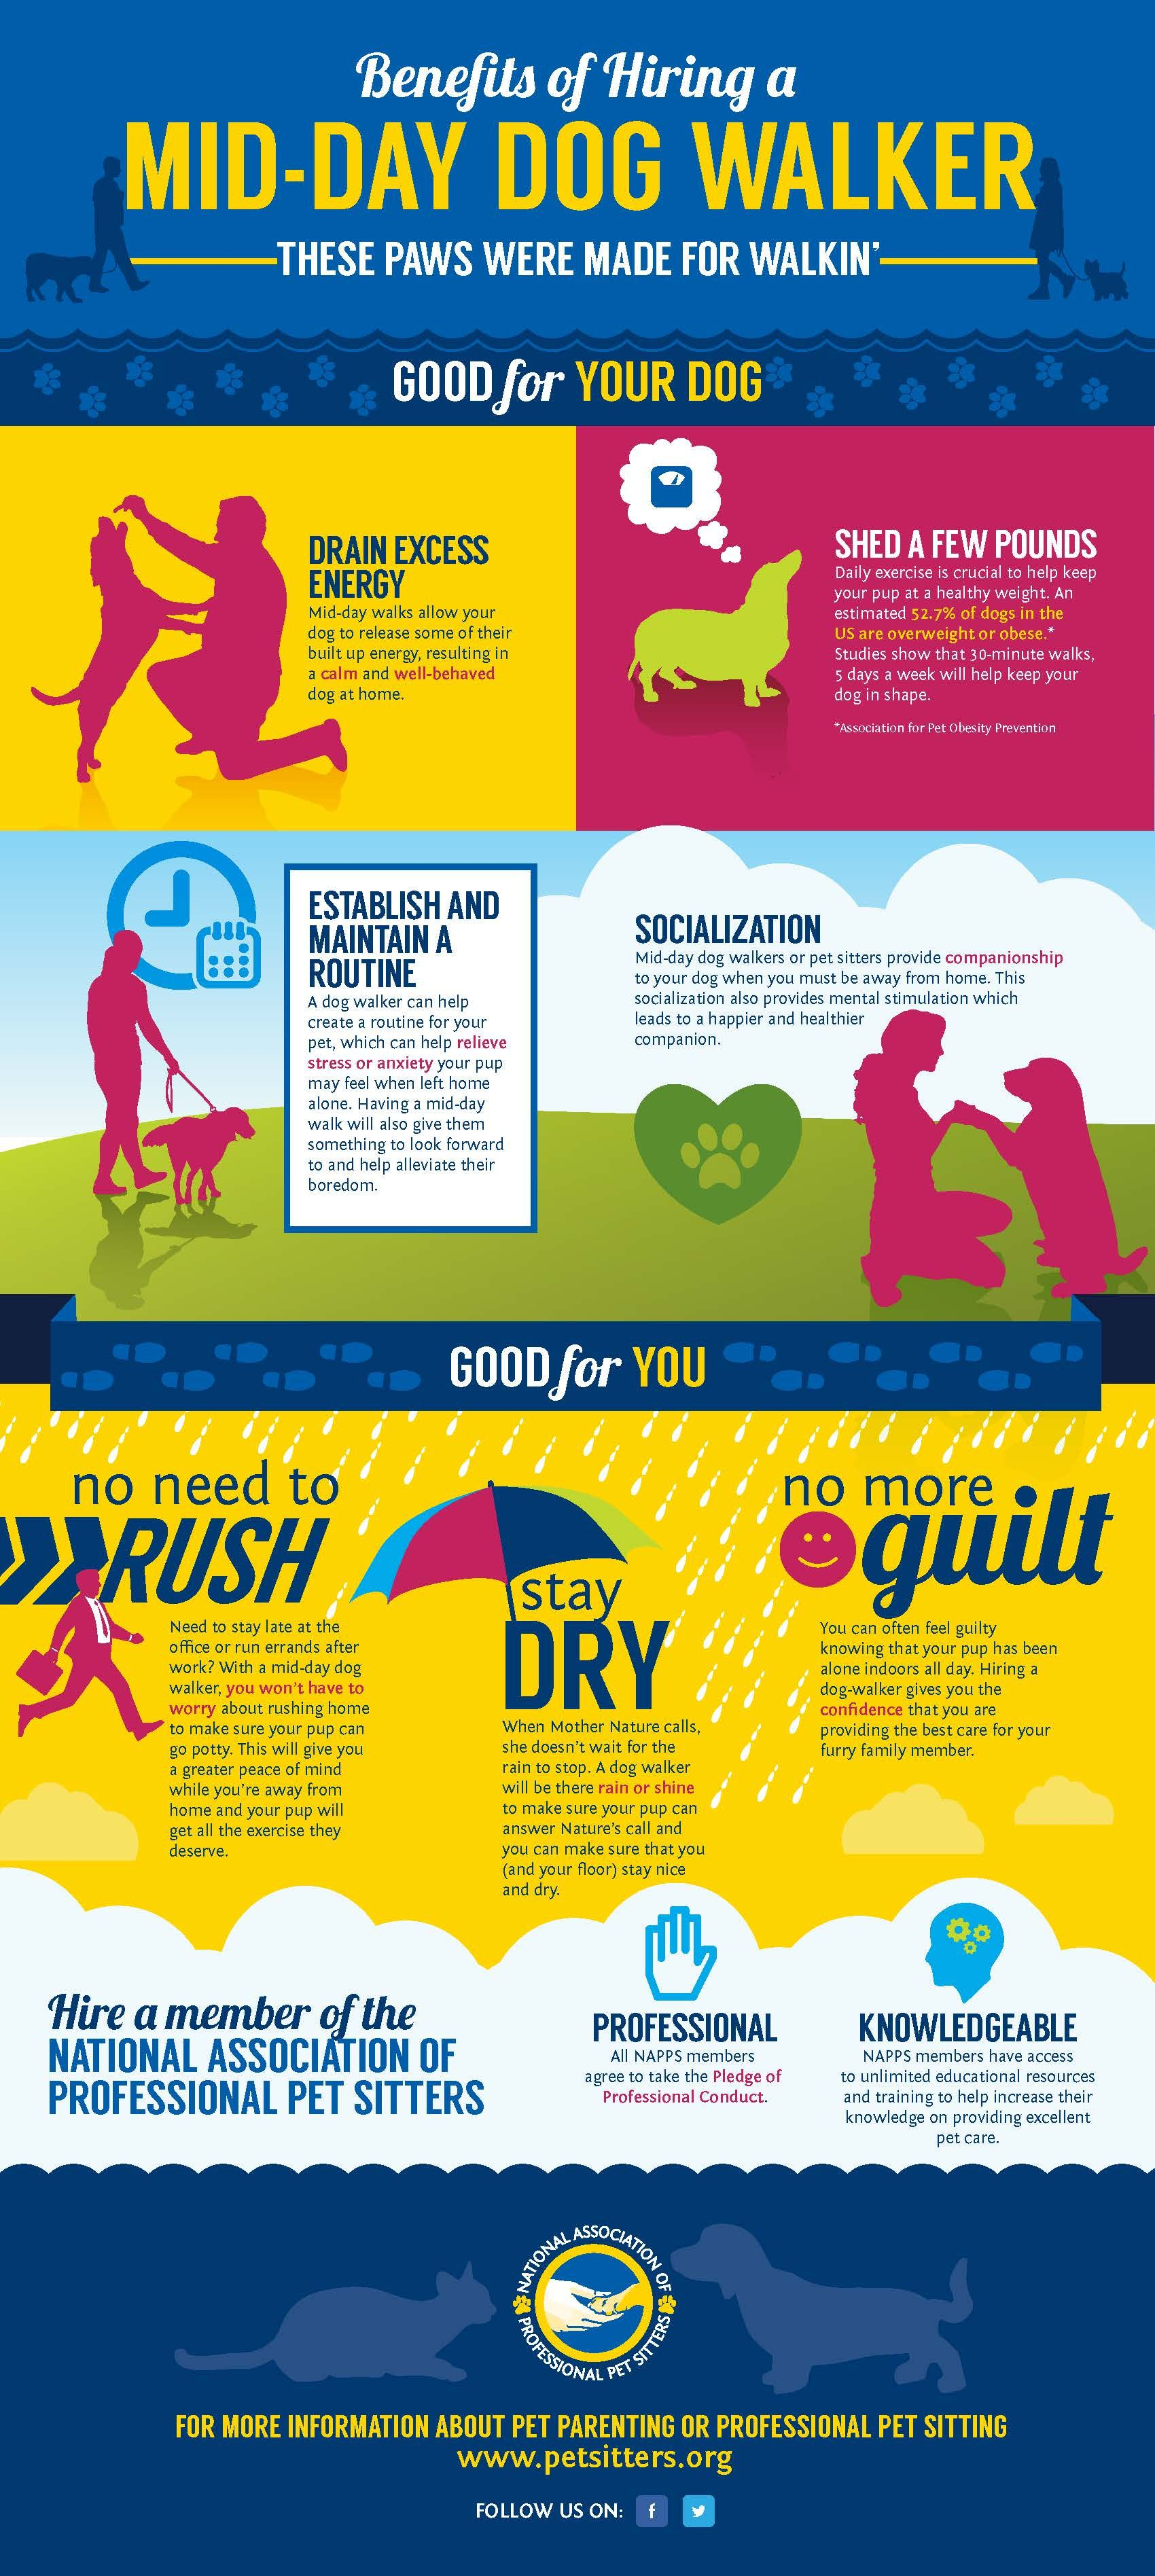 Mid Day Dog Walker Infographic There Are Many Benefits To Hiring A Mid Day Dog Walker Here A Dog Walking Services Dog Walking Business Pet Sitting Business